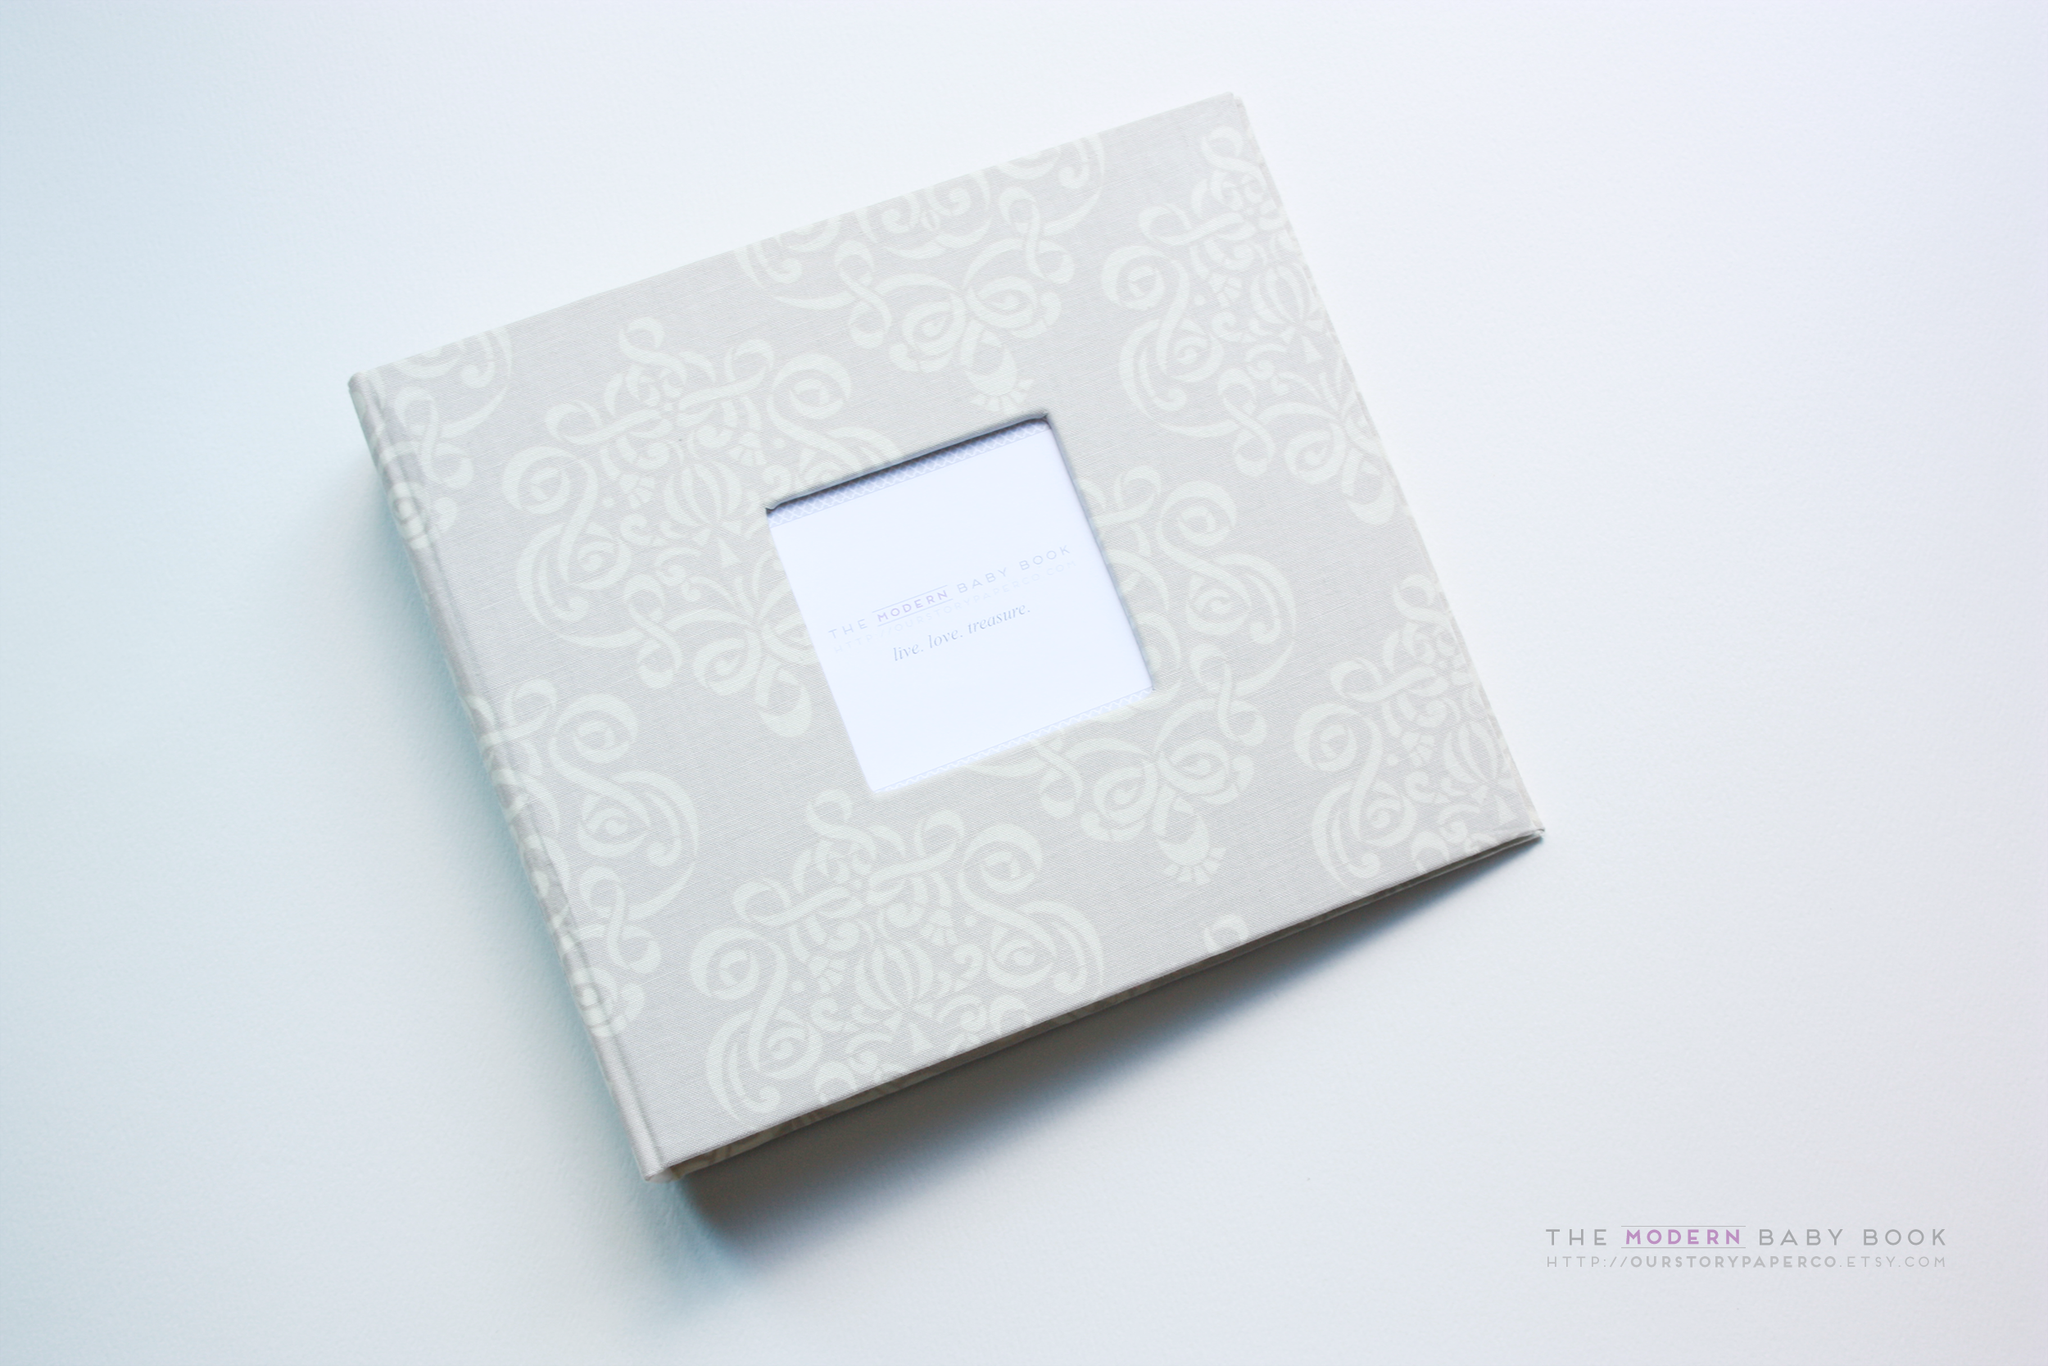 Natural Beige Swirls Modern Baby Book - Our Story Paper Co.